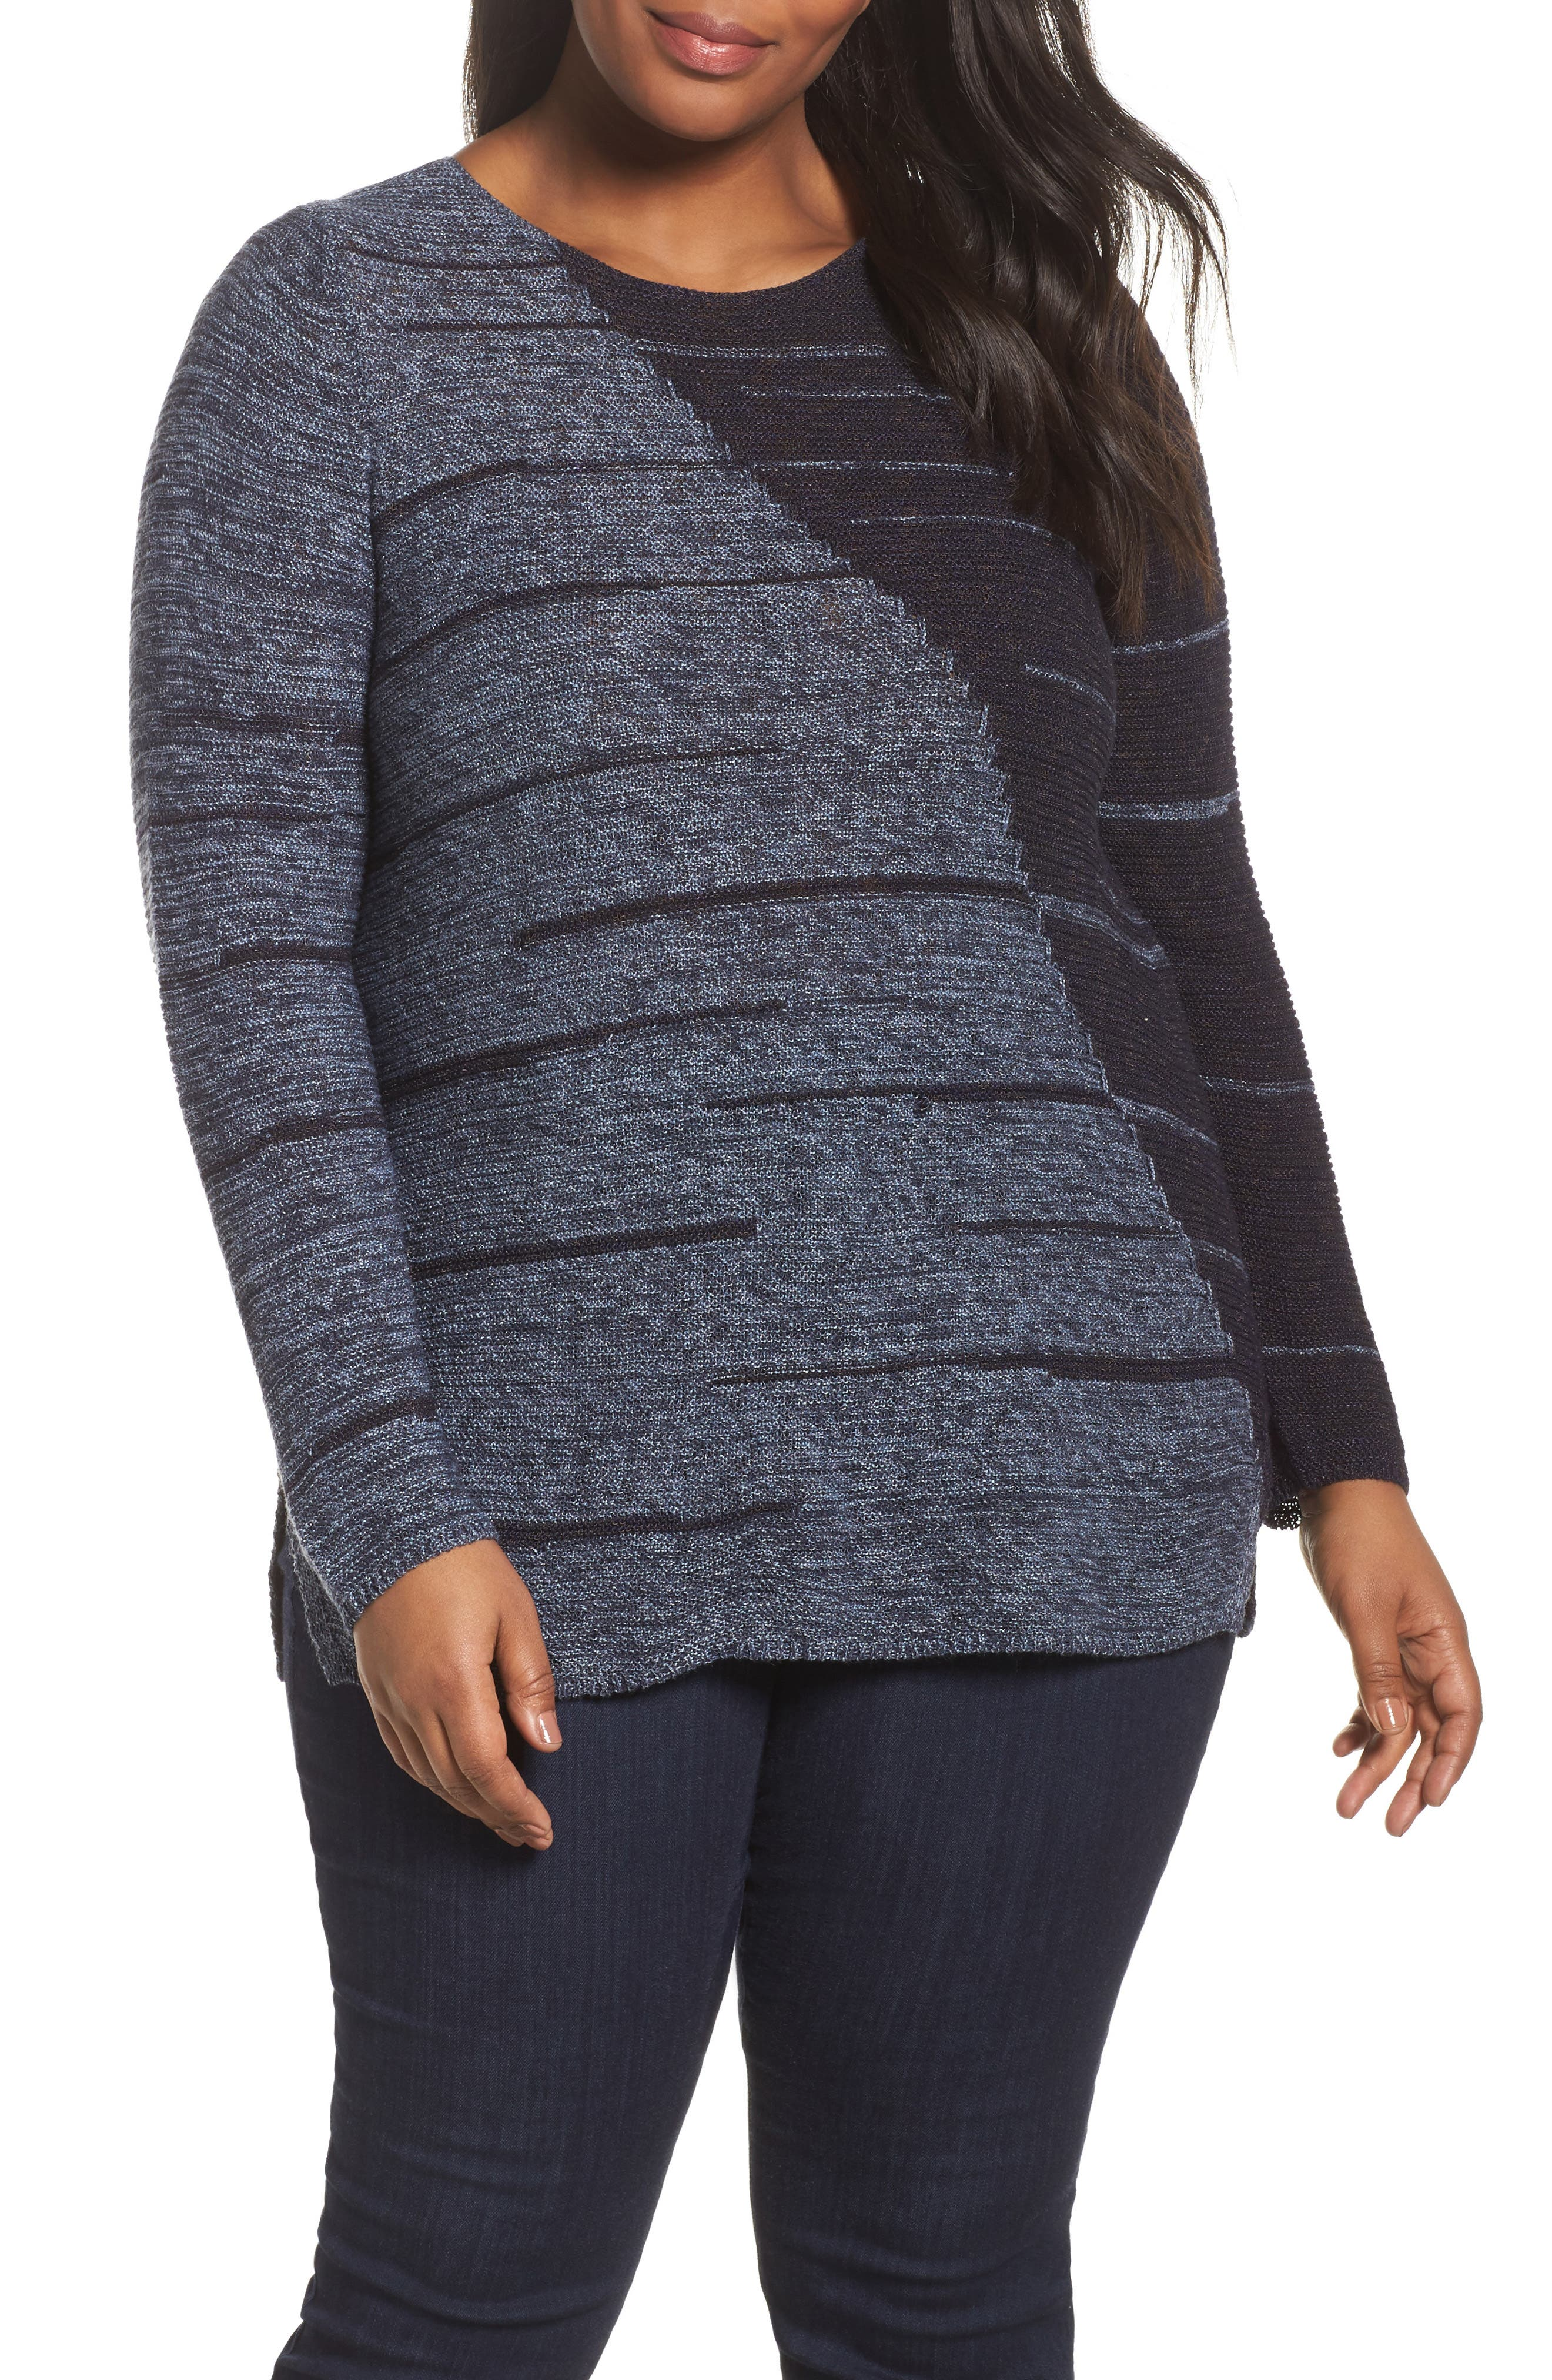 Main Image - NIC+ZOE New Reflections Top (Plus Size)